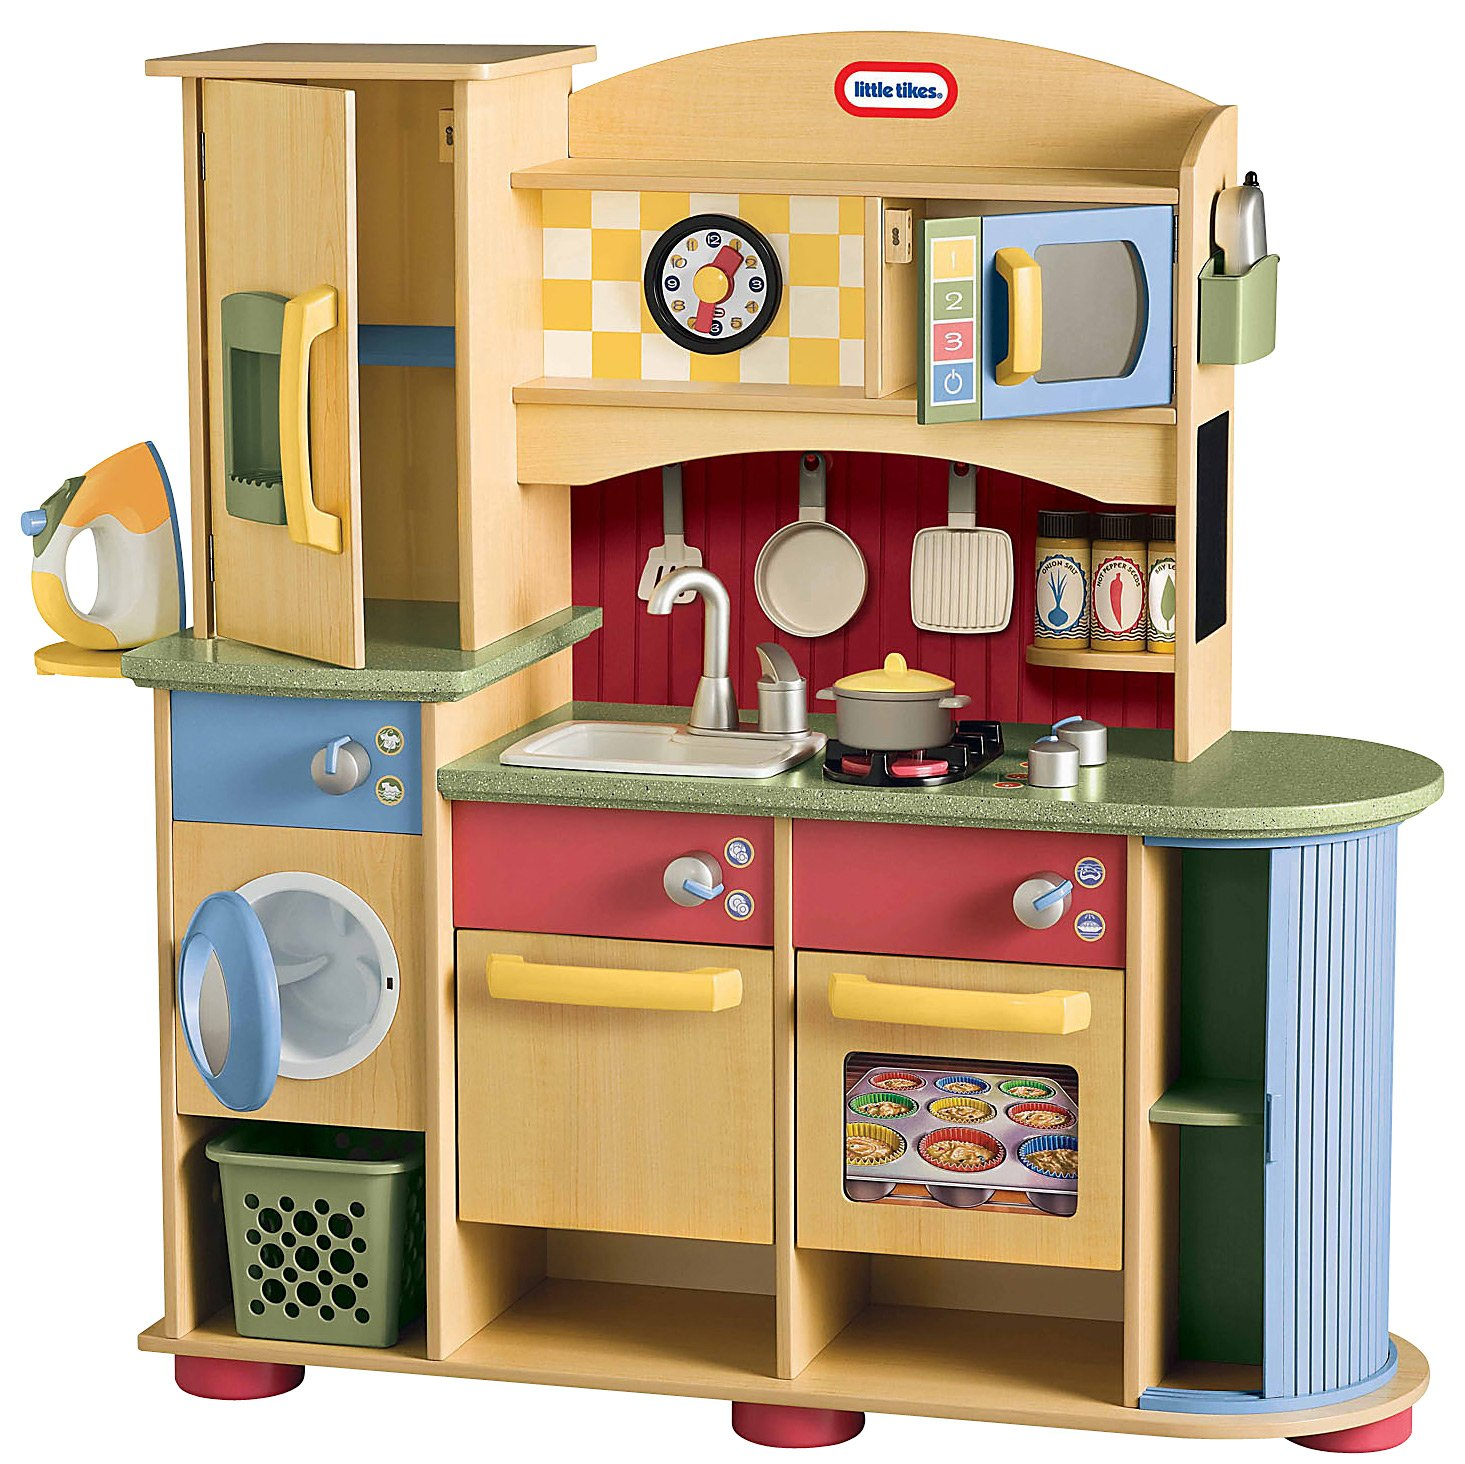 Little tikes deluxe wooden kitchen and laundry center for Kitchen set for 1 year old